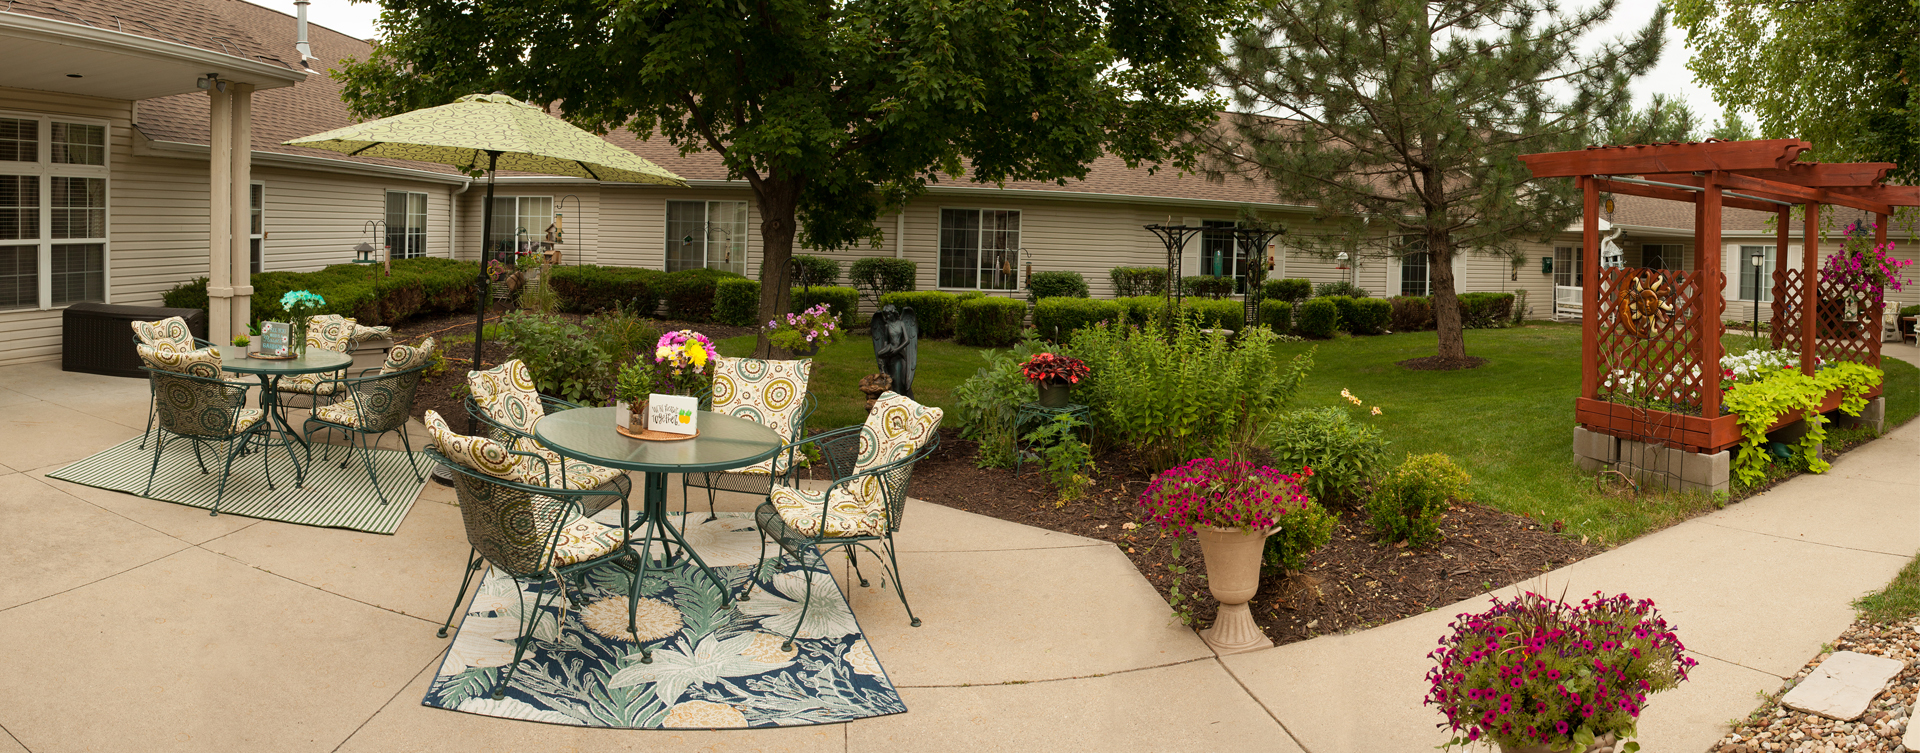 Enjoy bird watching, gardening and barbecuing in our courtyard at Bickford of Cedar Falls